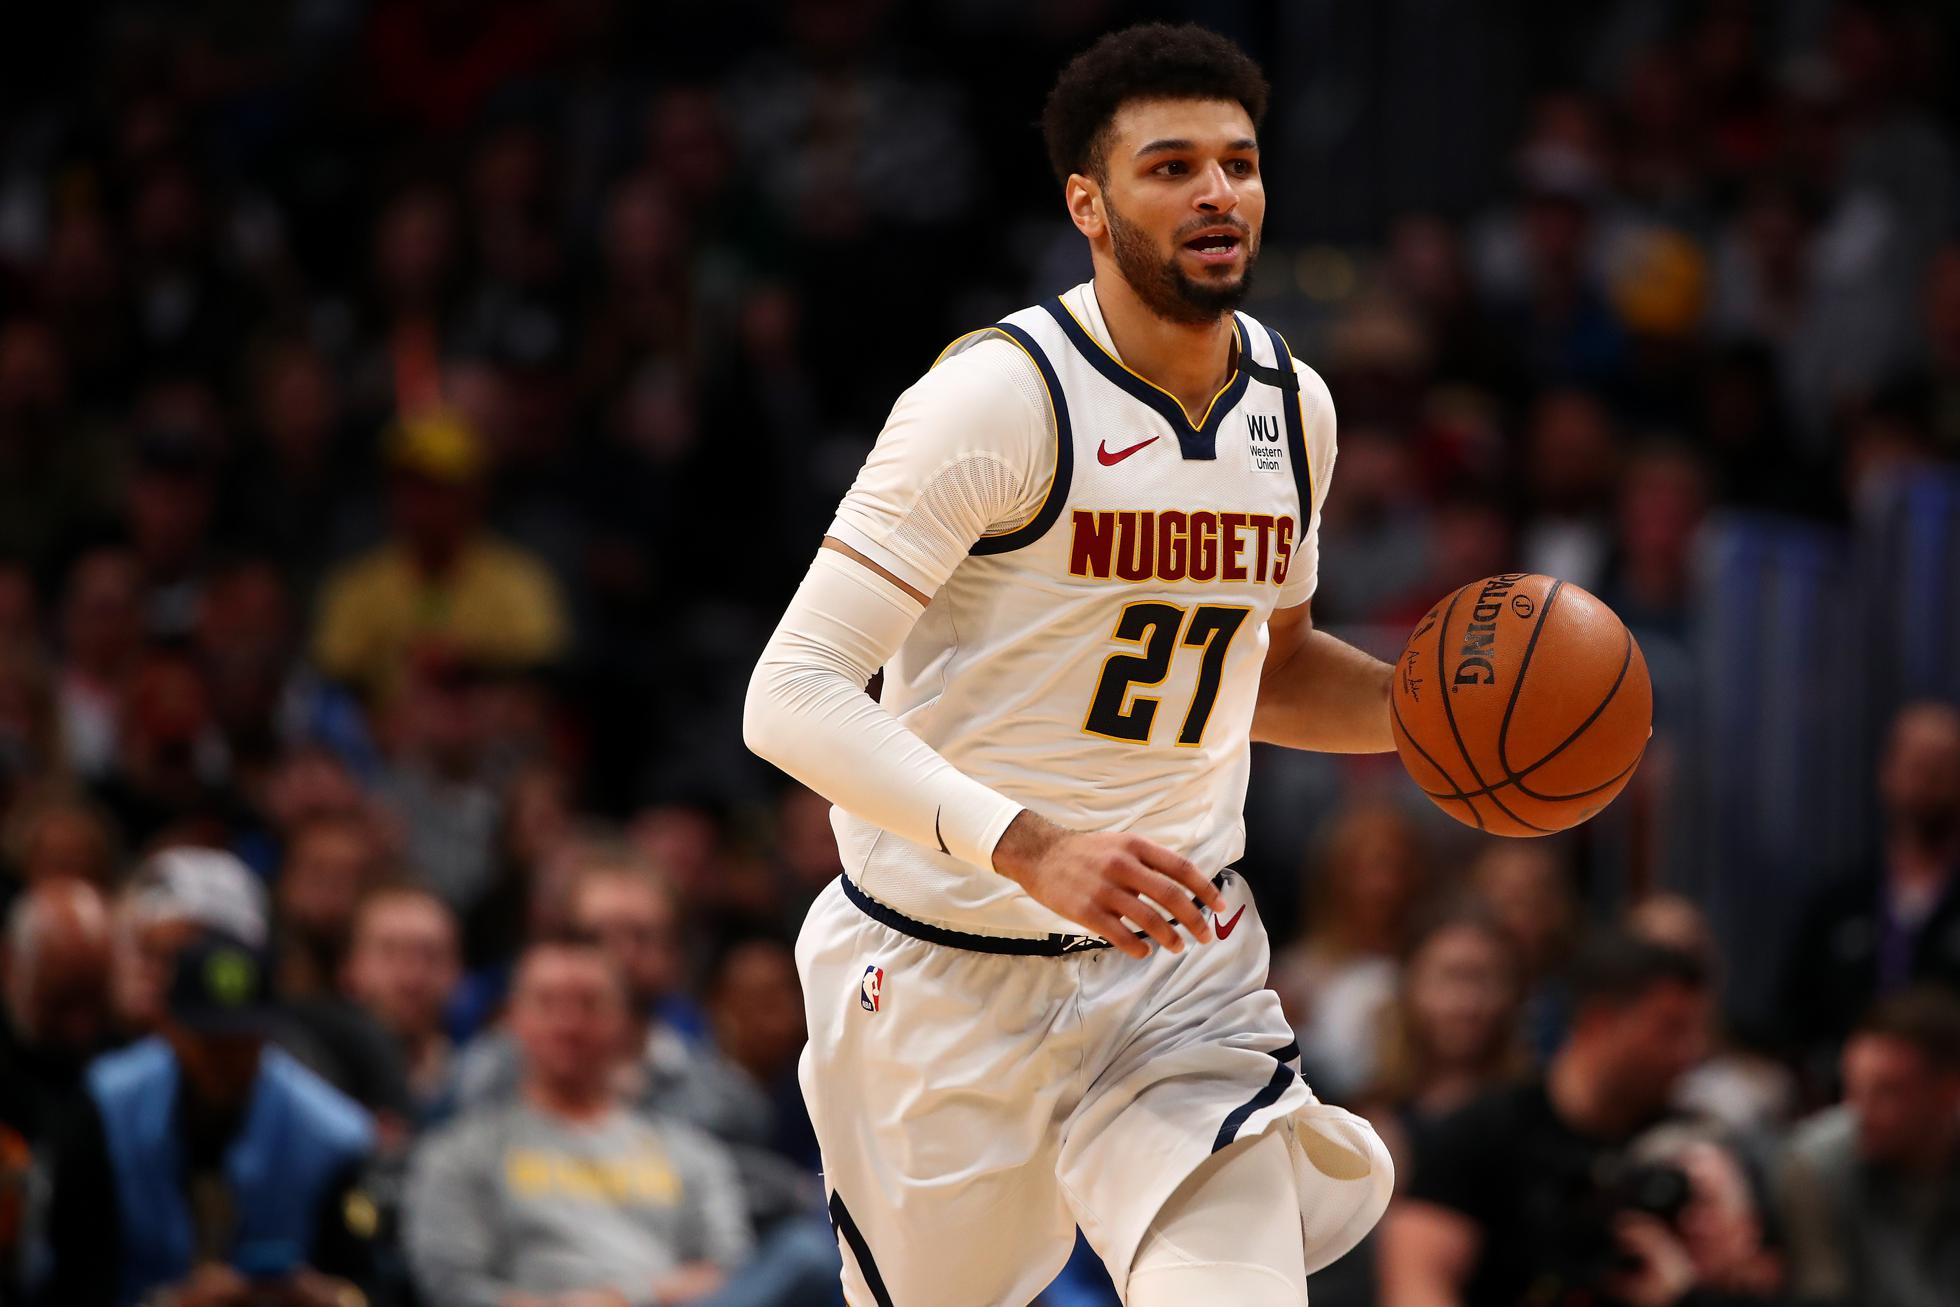 Denver Nuggets guard Jamal Murray dribbles up the court at the Pepsi Center during a 2020 NBA game.